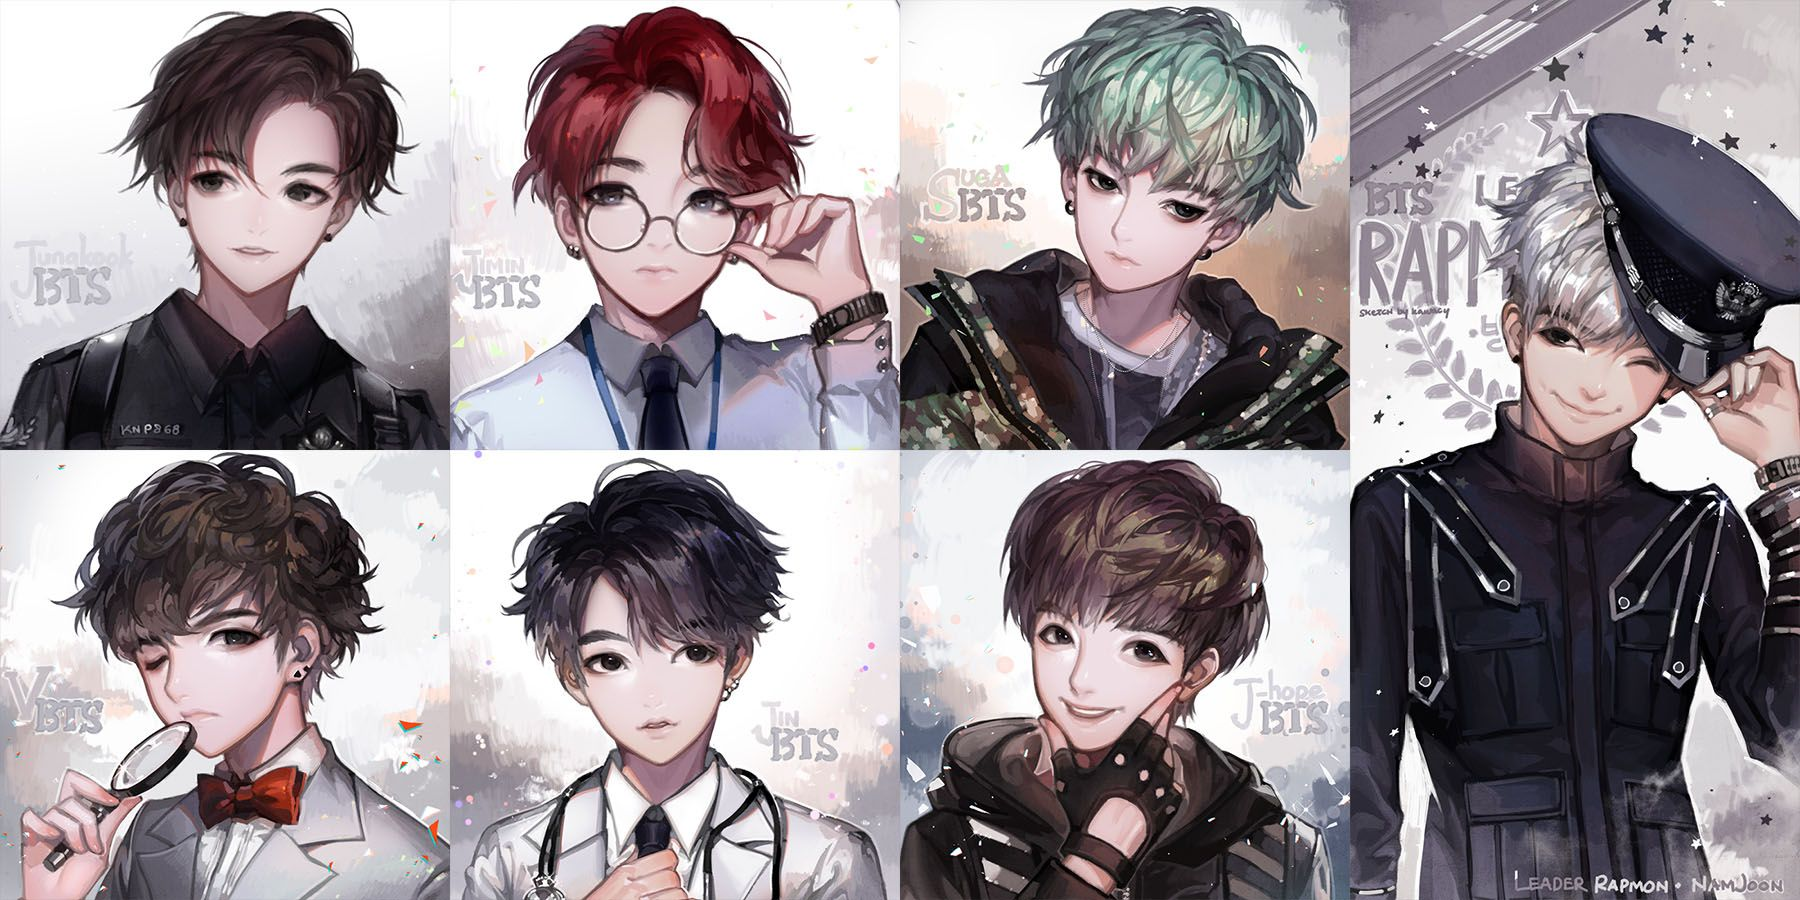 Pin by LOVE on BTS... ️ (With images) Bts fanart, Bts